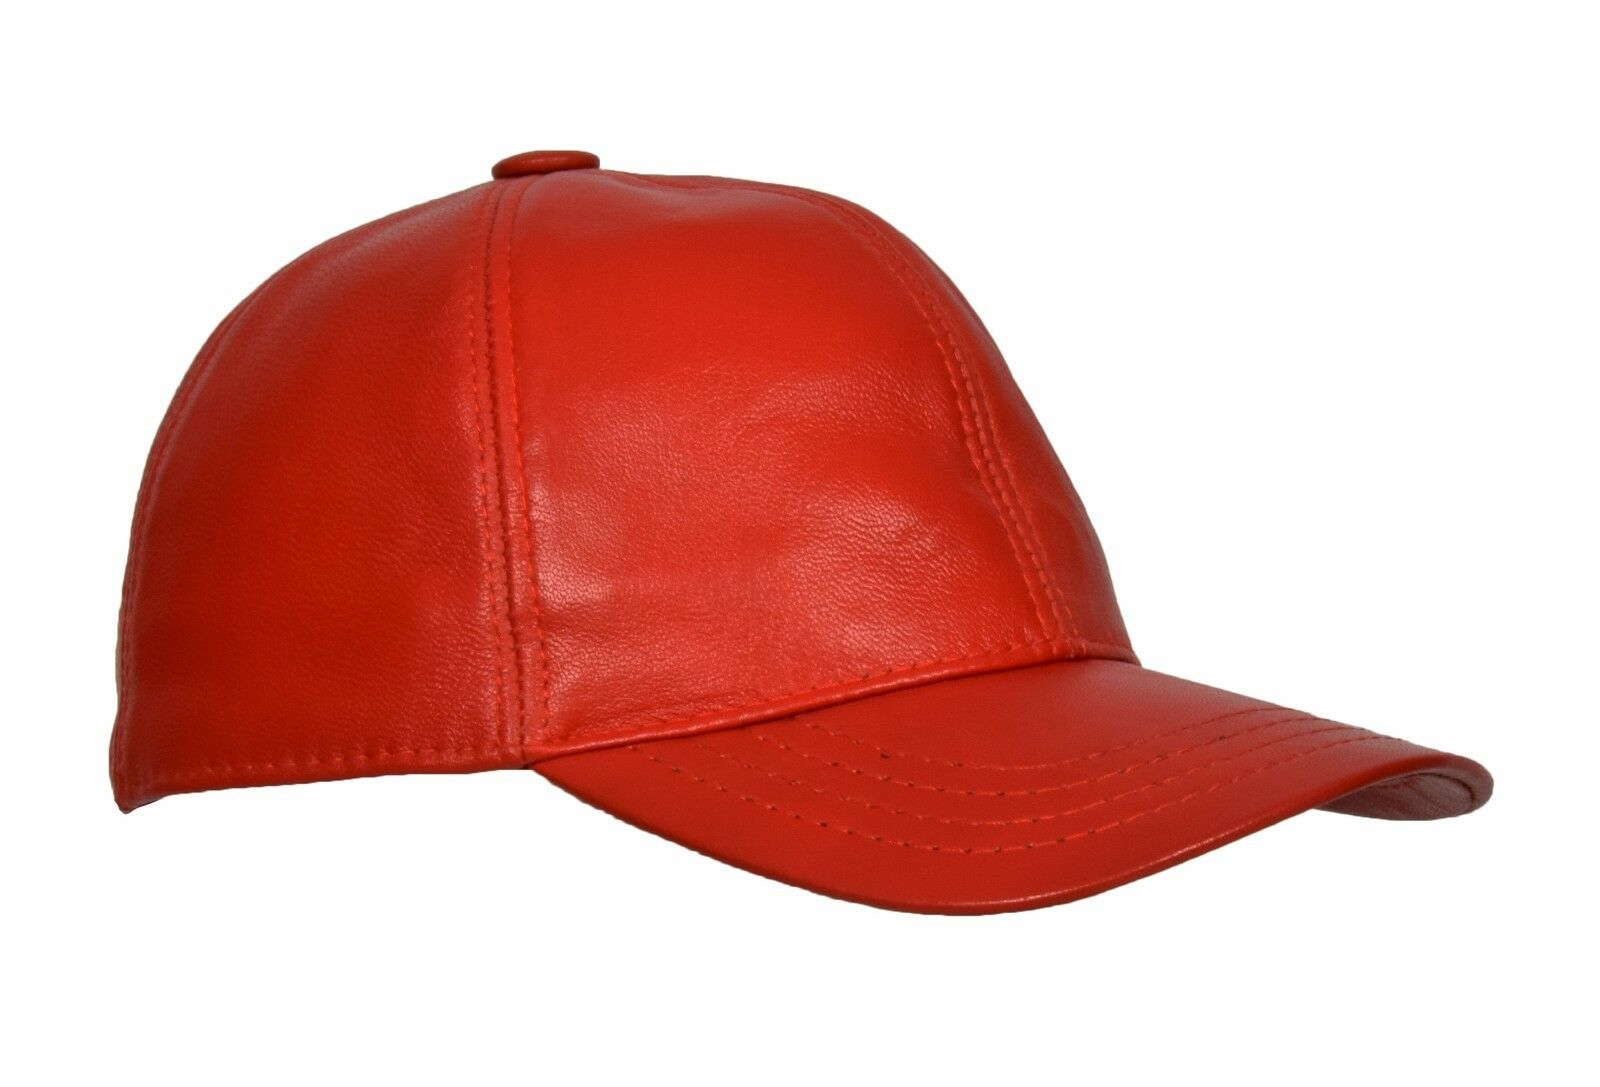 High Quality Real Red Leather Baseball Cap Velcro Fastening One Size ... 600046eb616